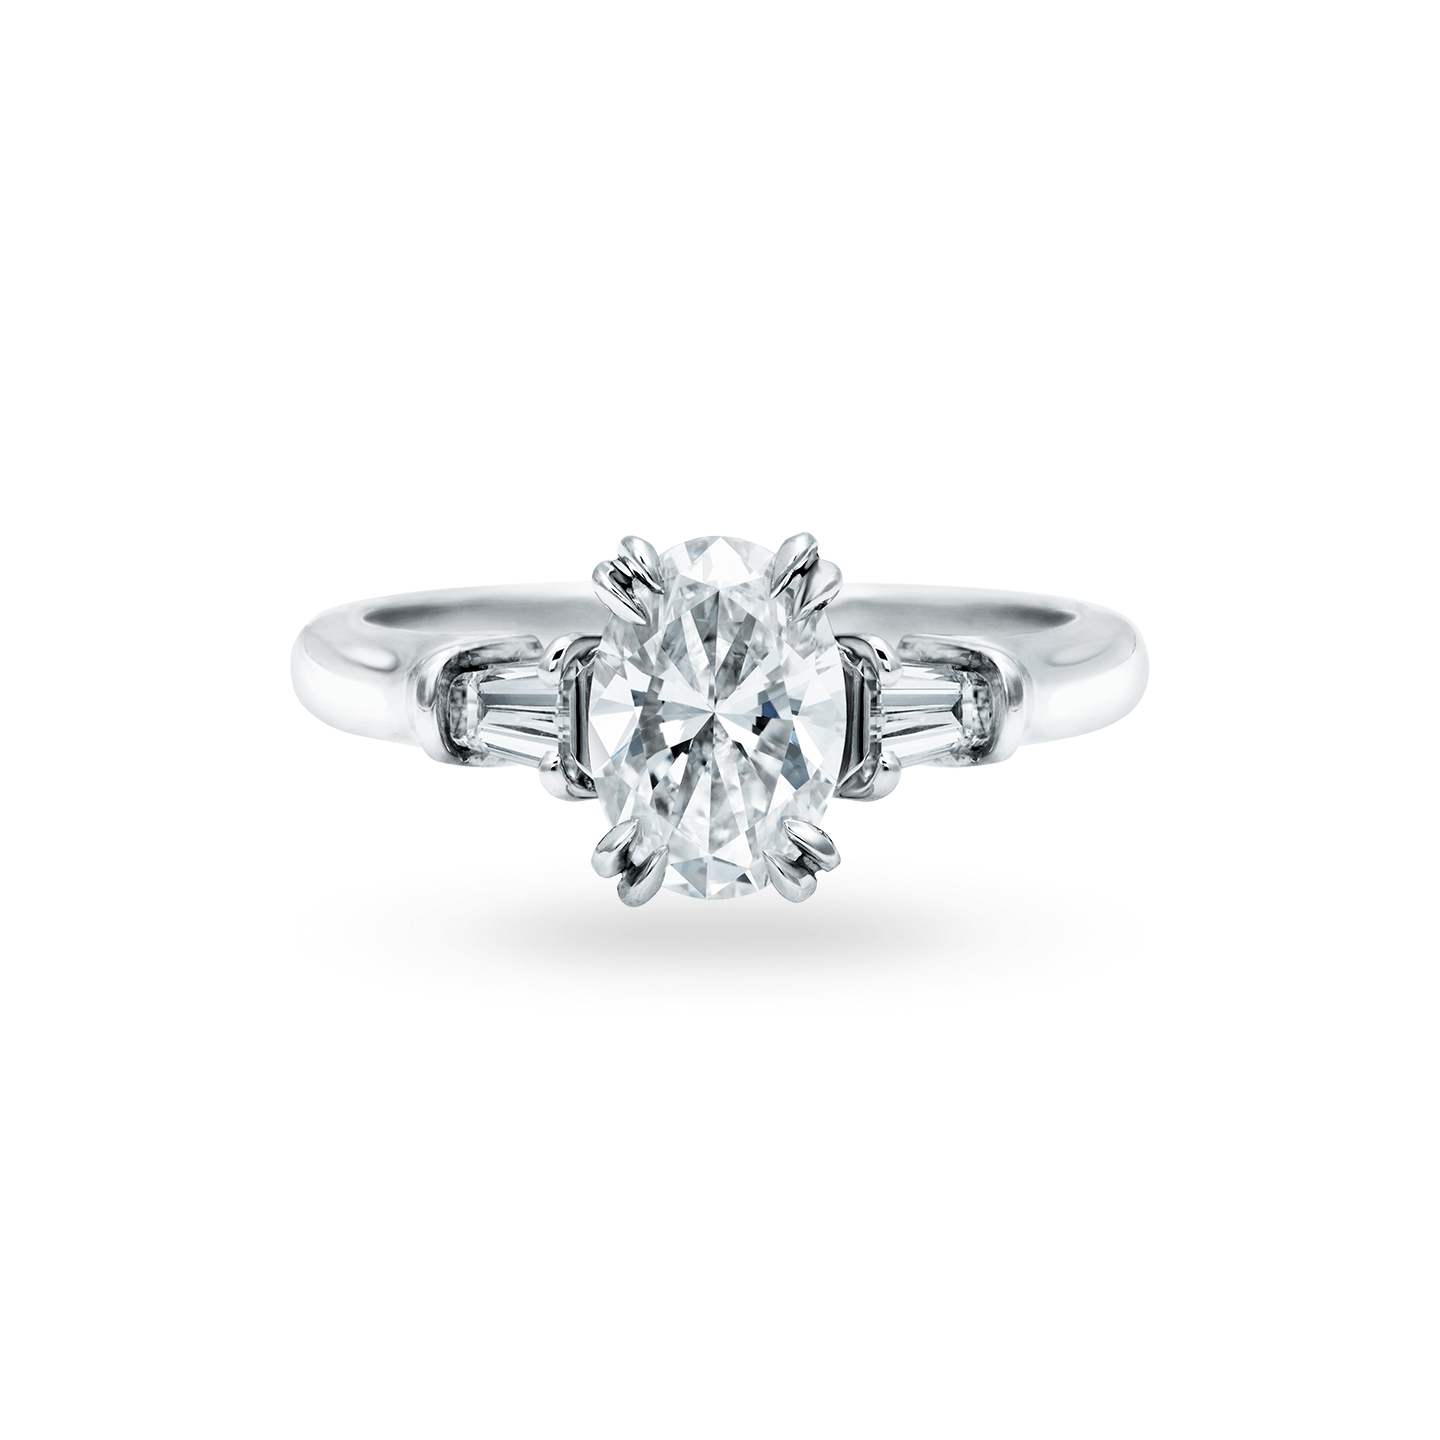 Classic Winston Oval-Shaped Engagement Ring with Tapered Baguette Side Stones, Product Image 1